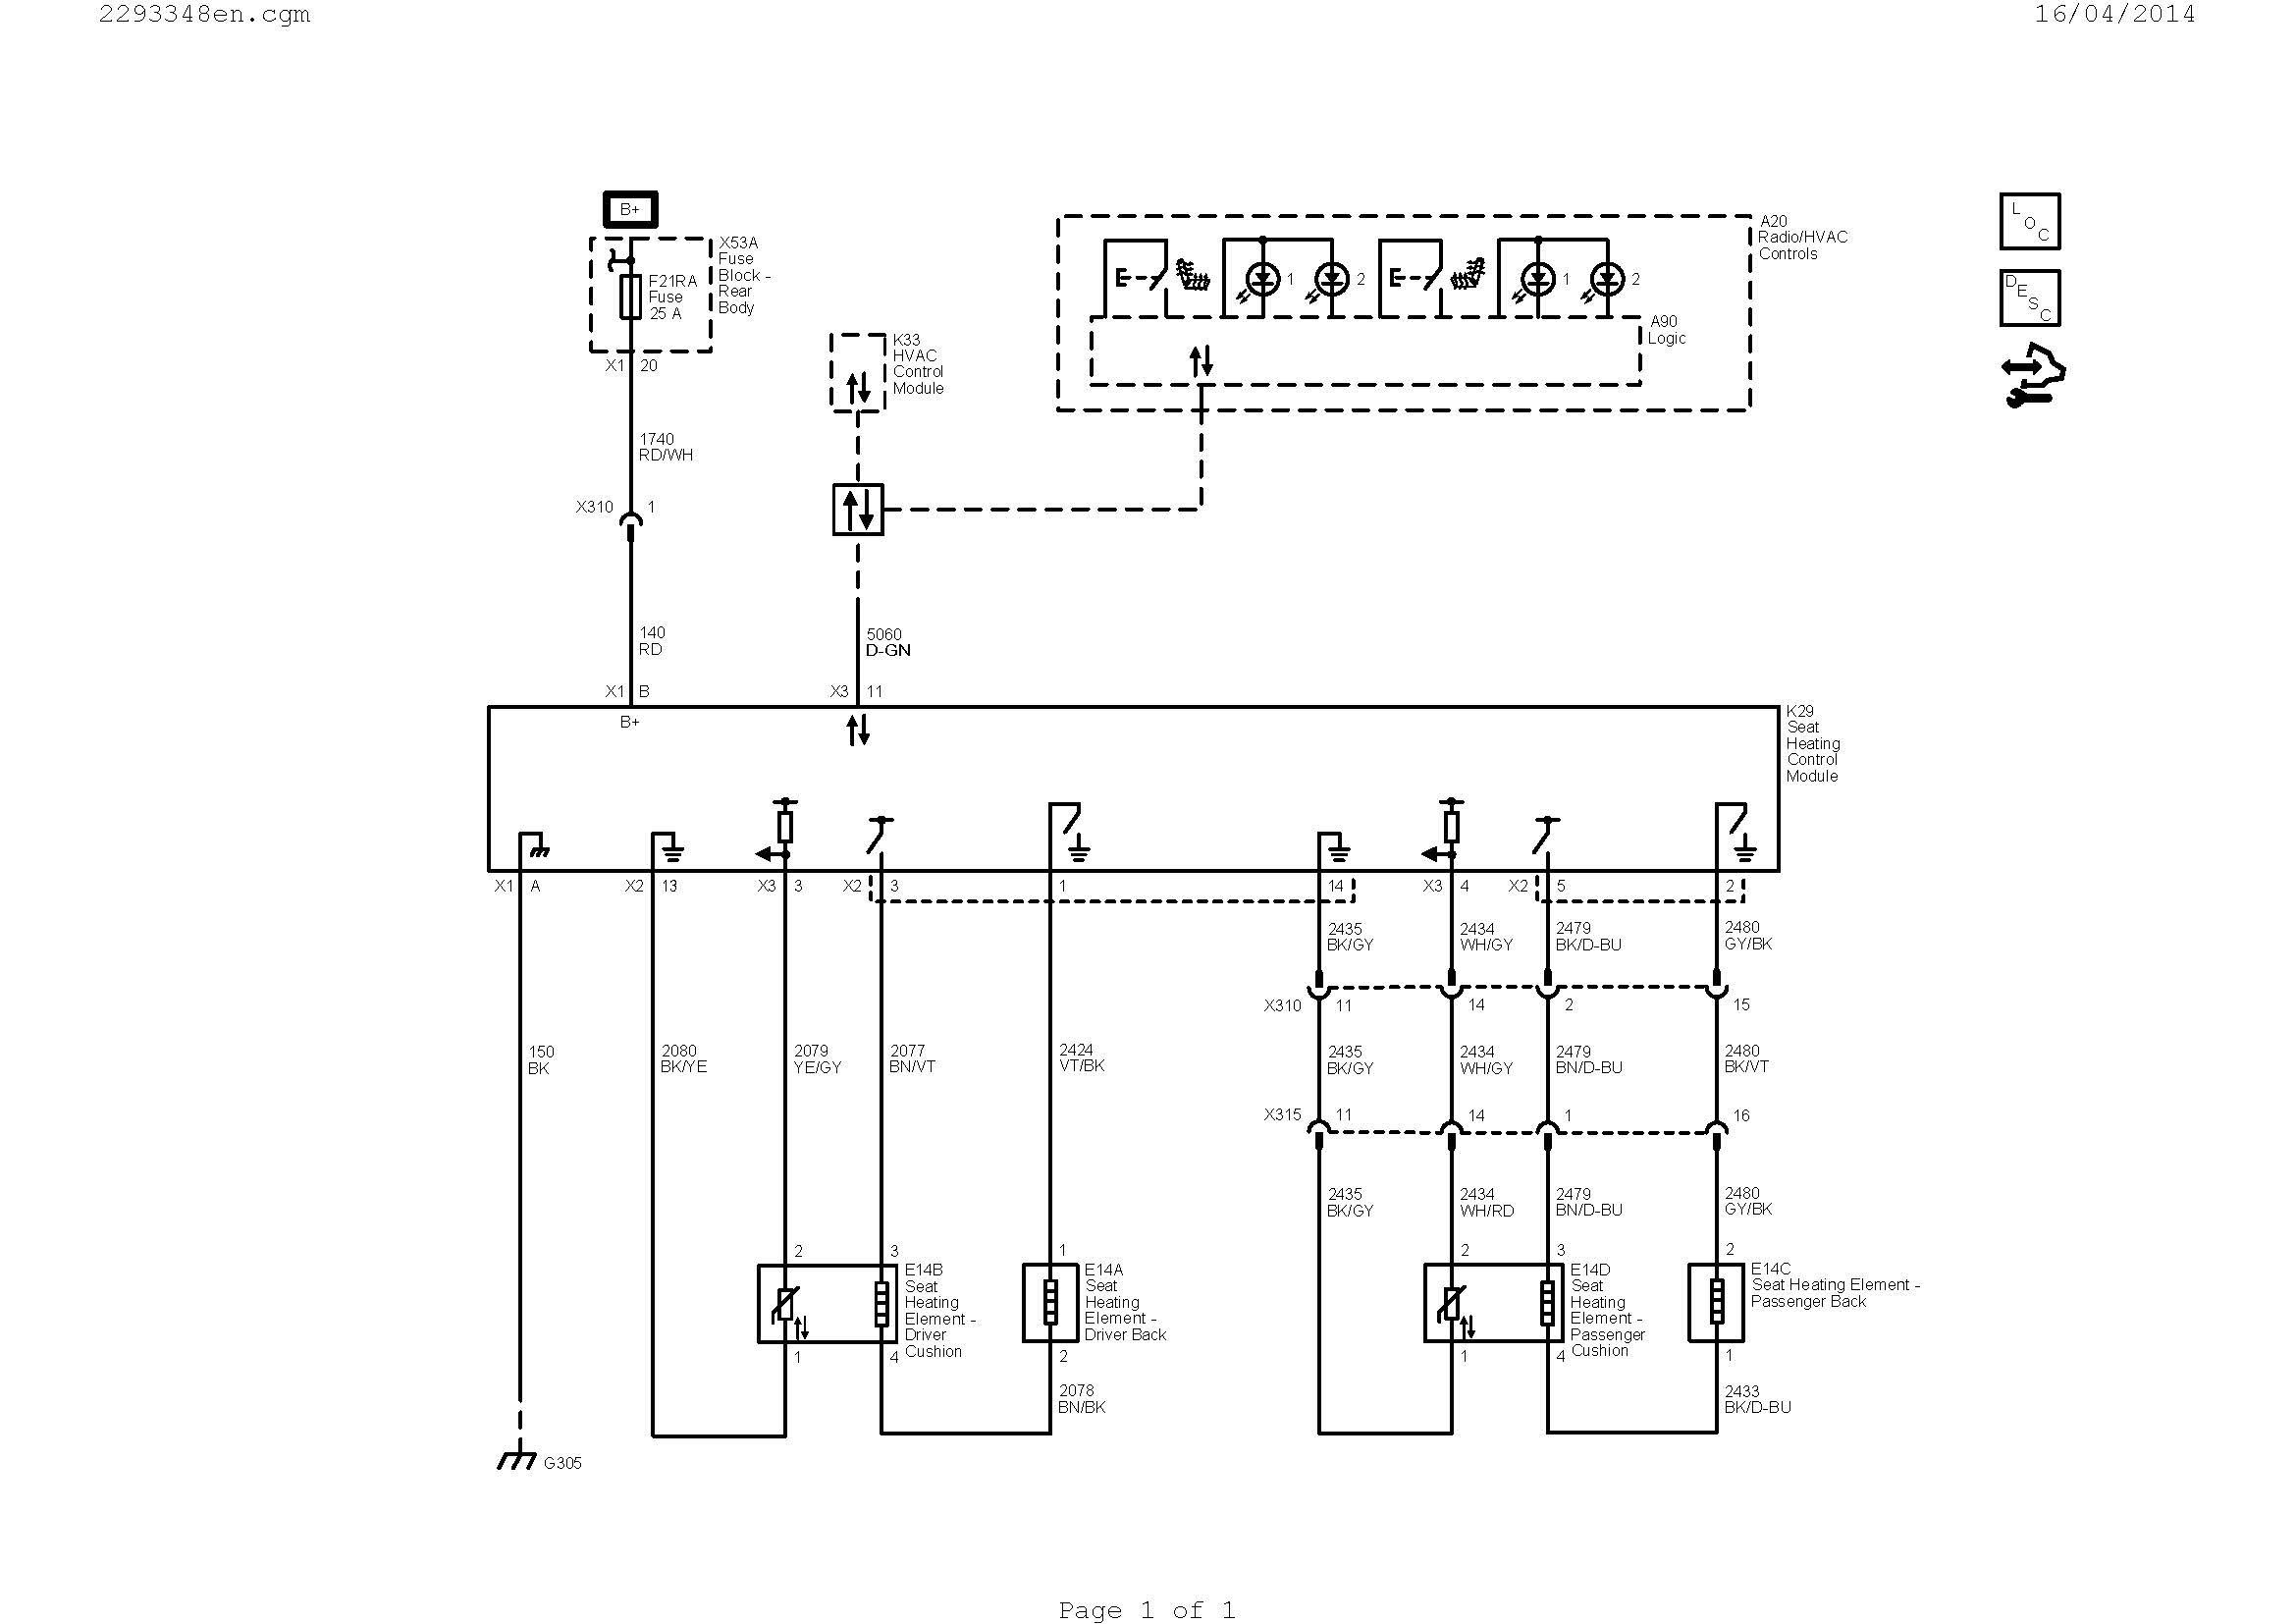 central heating thermostat wiring diagram Collection-ac thermostat wiring diagram Collection Wiring A Ac Thermostat Diagram New Wiring Diagram Ac Valid 6-e